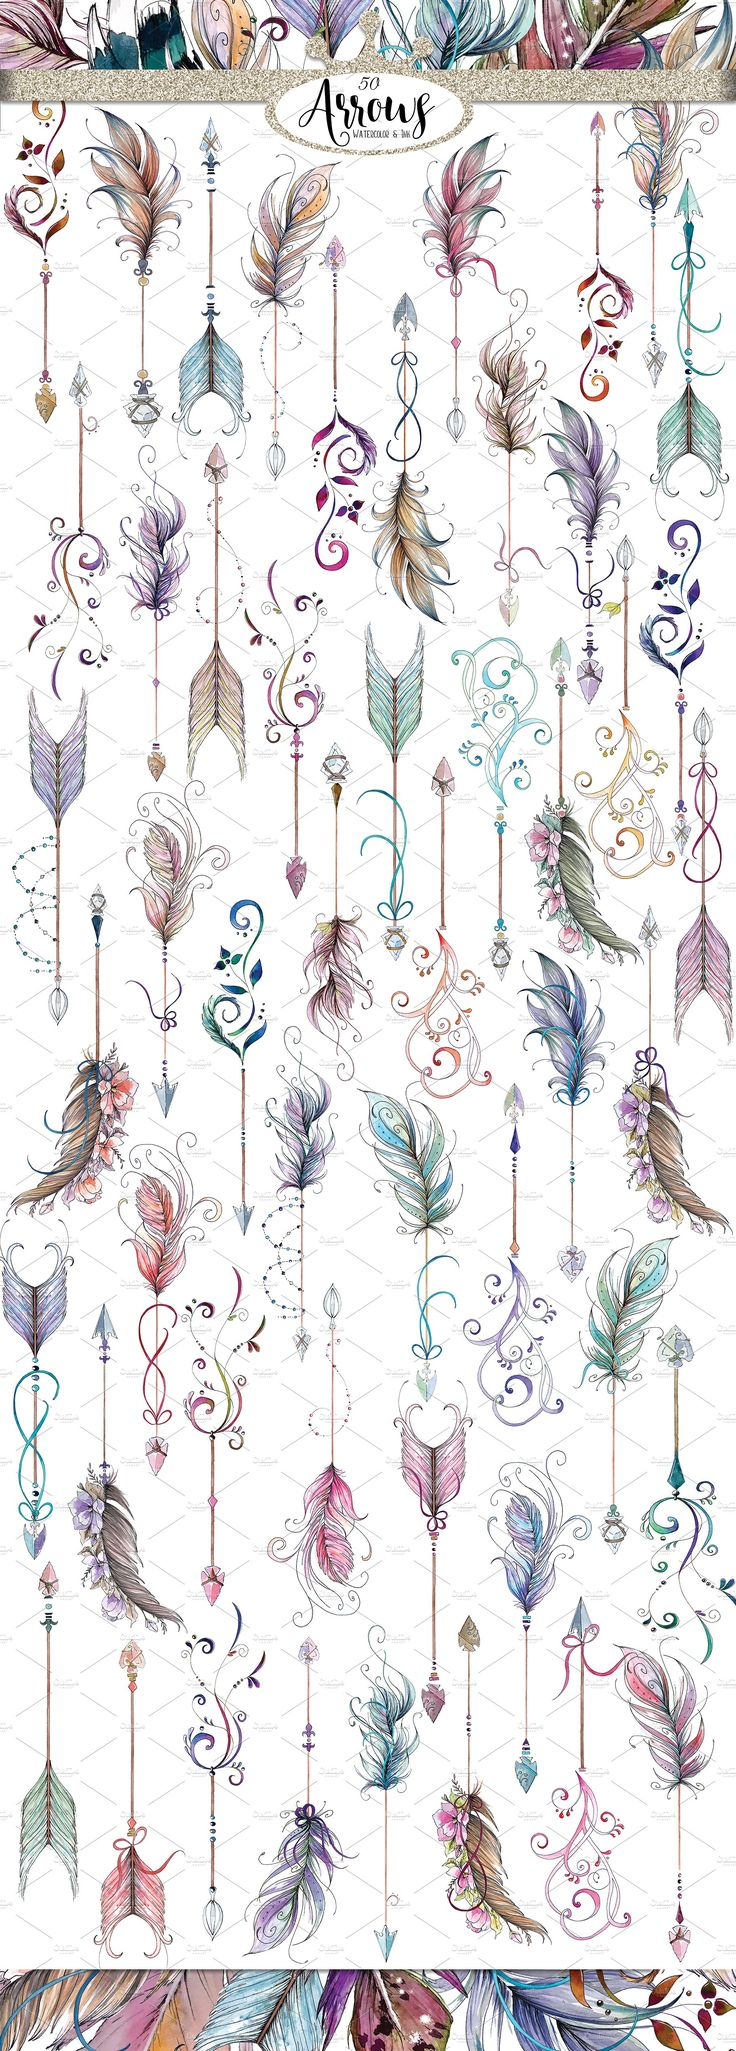 Watercolor & Ink Boho Arrows ClipArt – Illustrations – 5 – Lydia Xuereb